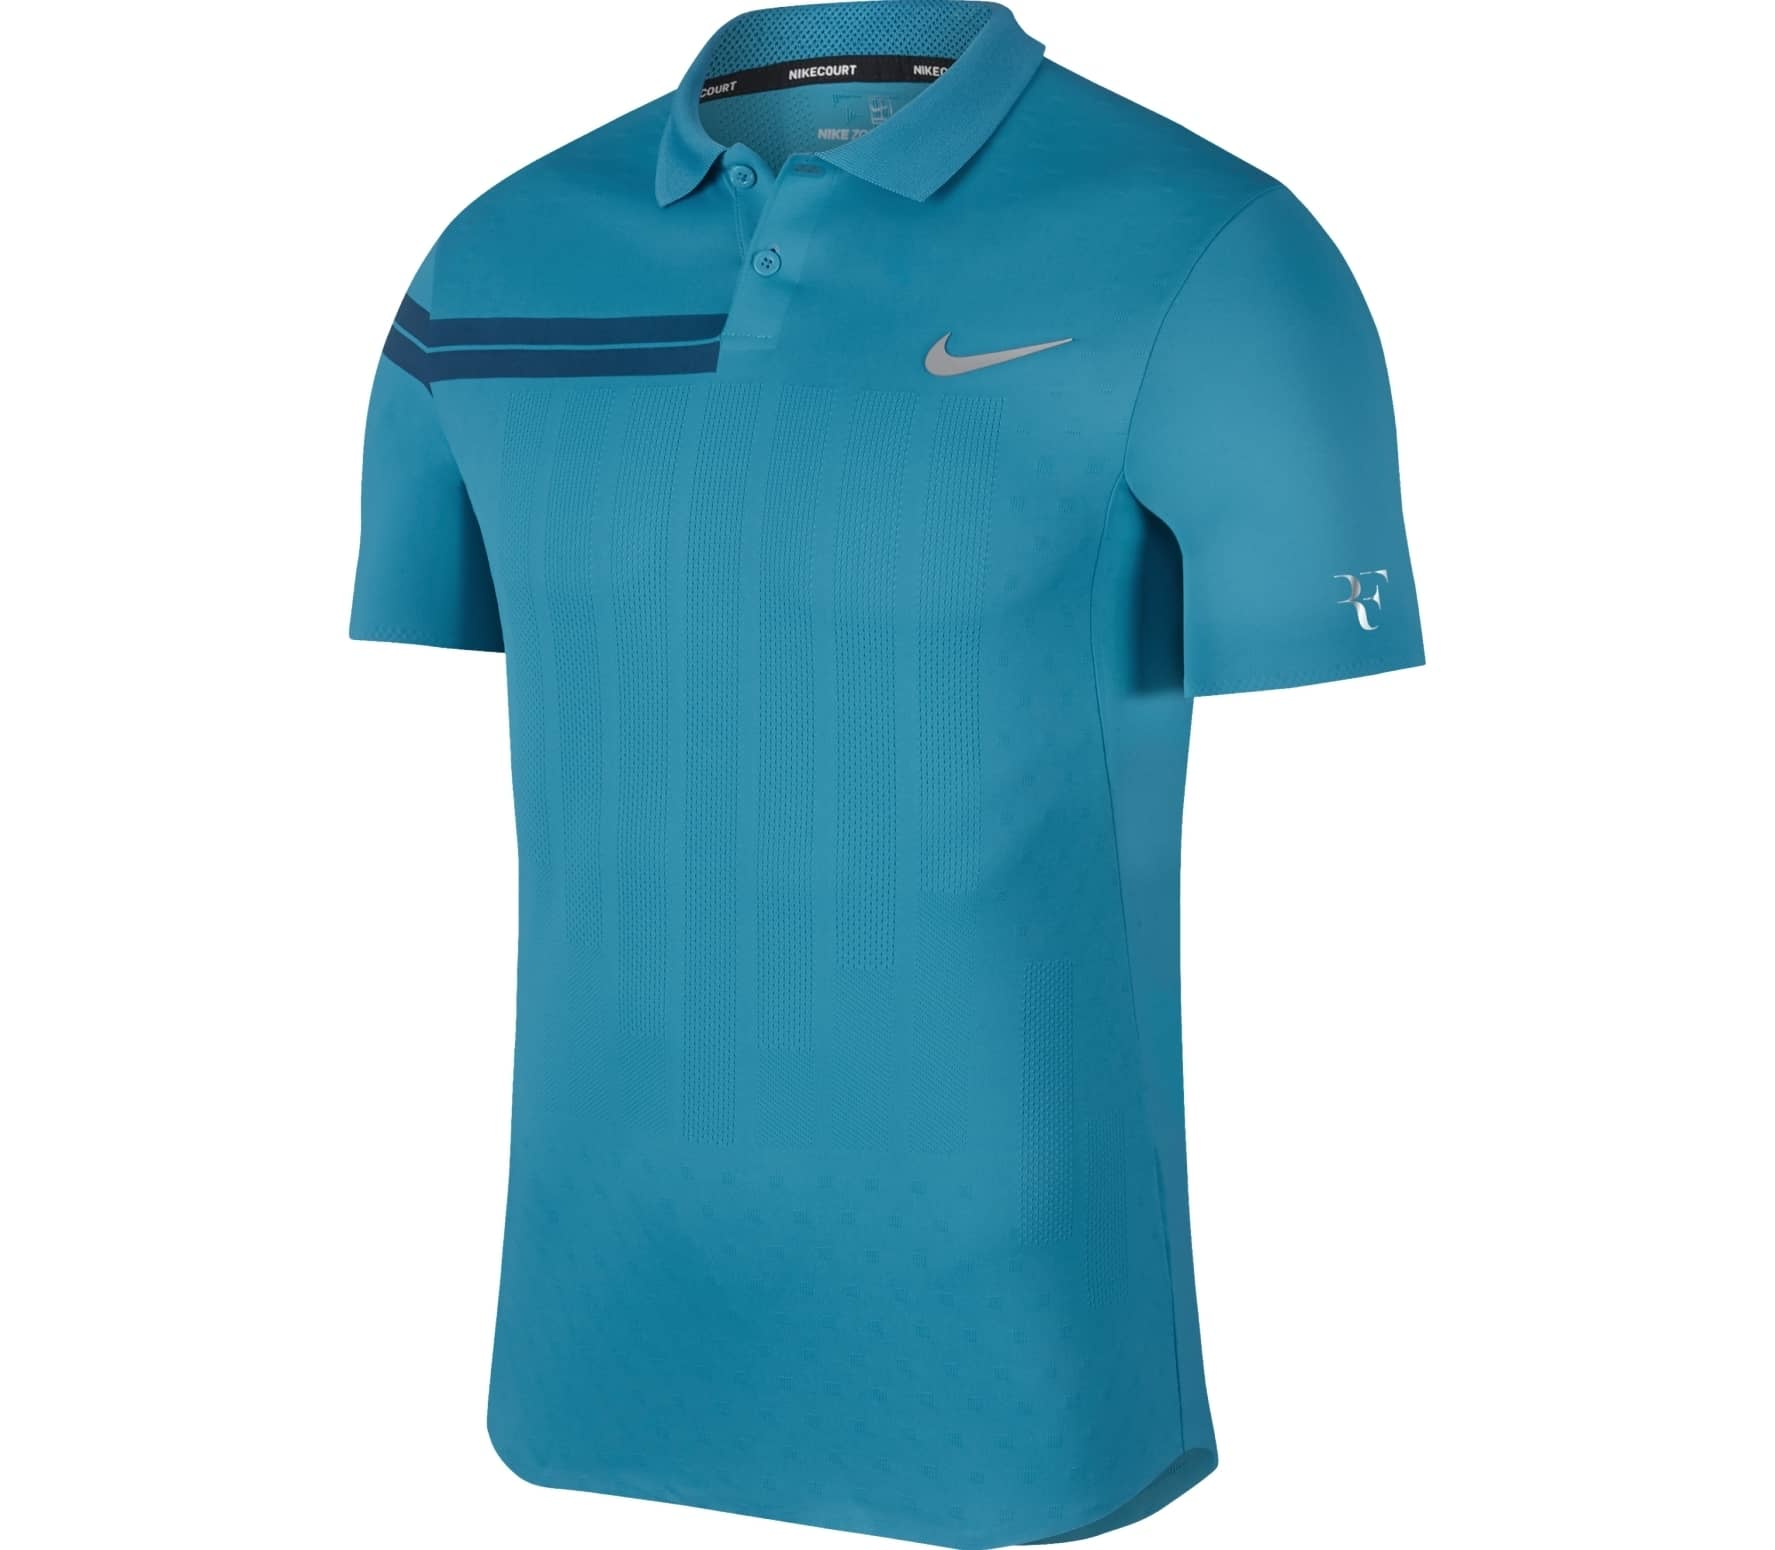 27735c13f Nike - Court Zonal Cooling RF Advantage men's tennis polo top (light blue)